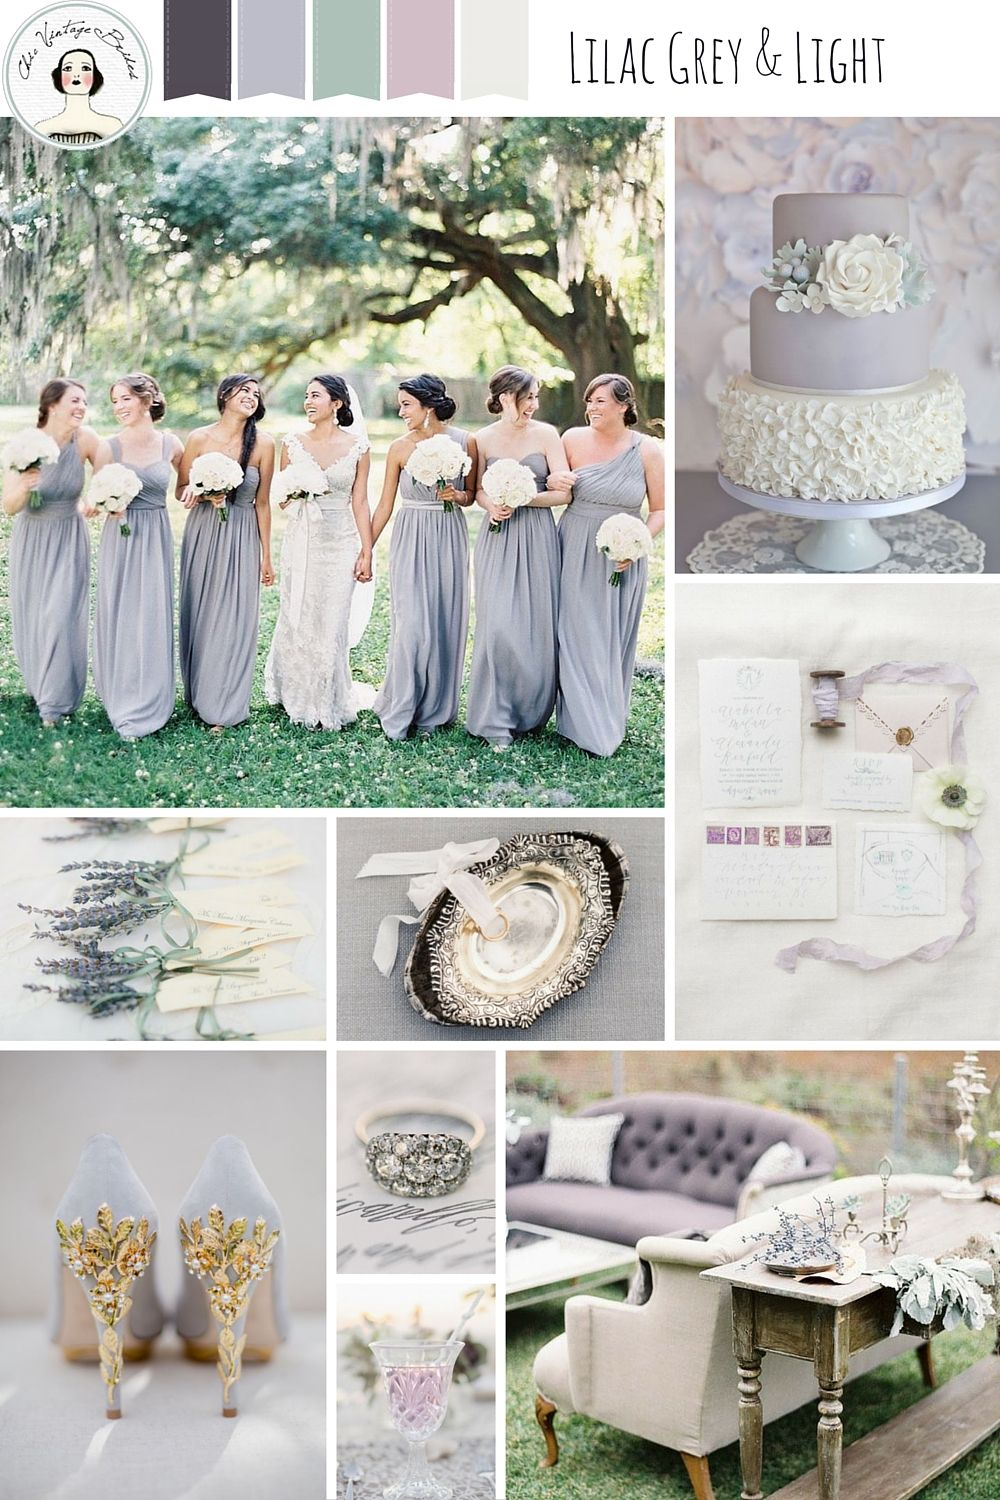 Elegant Wedding Ideas in a Chic Grey & Pastel Palette | Pinterest ...